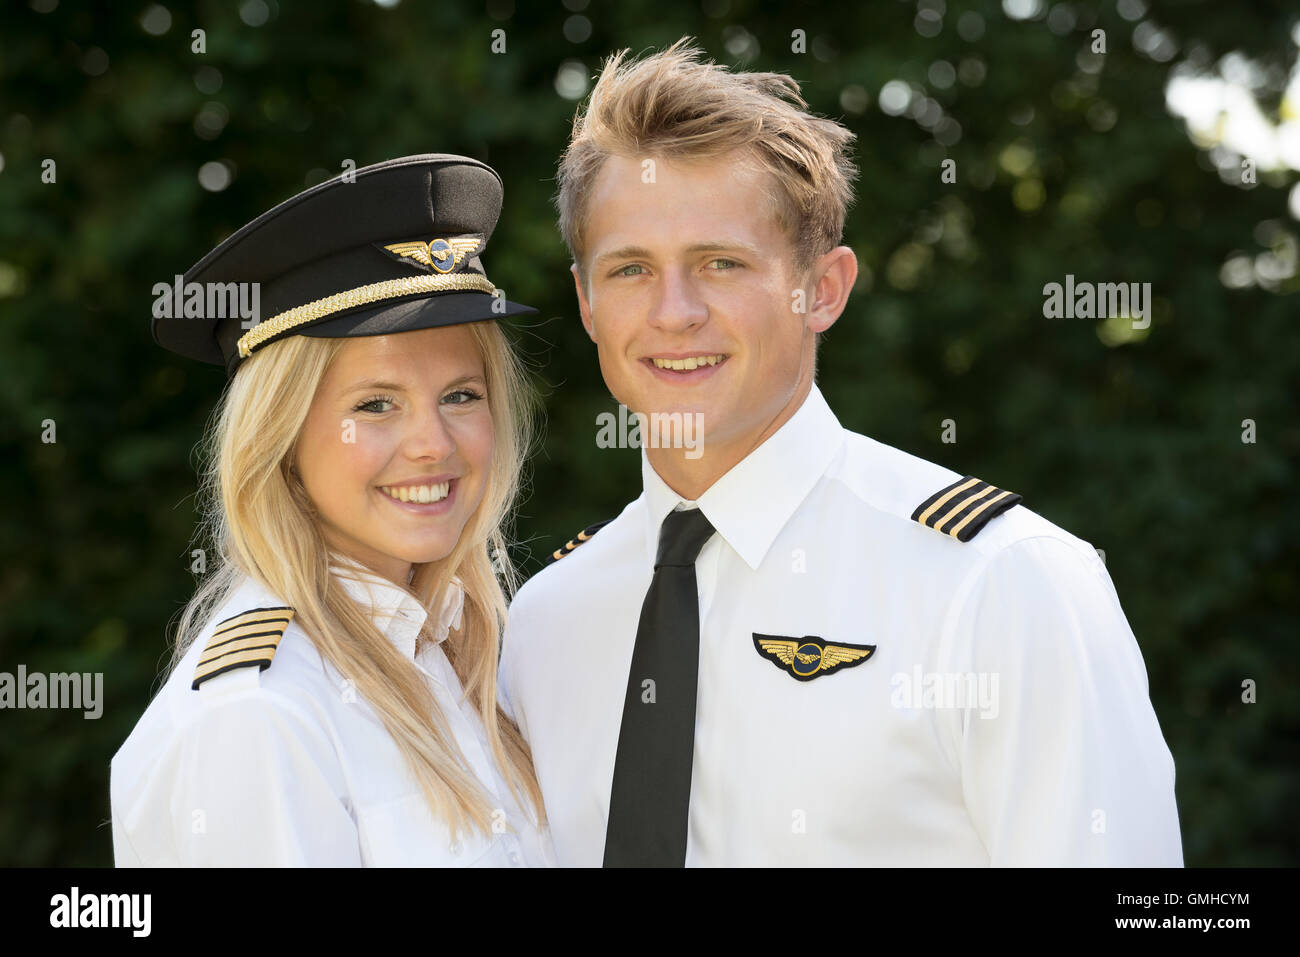 Portrait of two young male and female airline officers in uniform - Stock Image